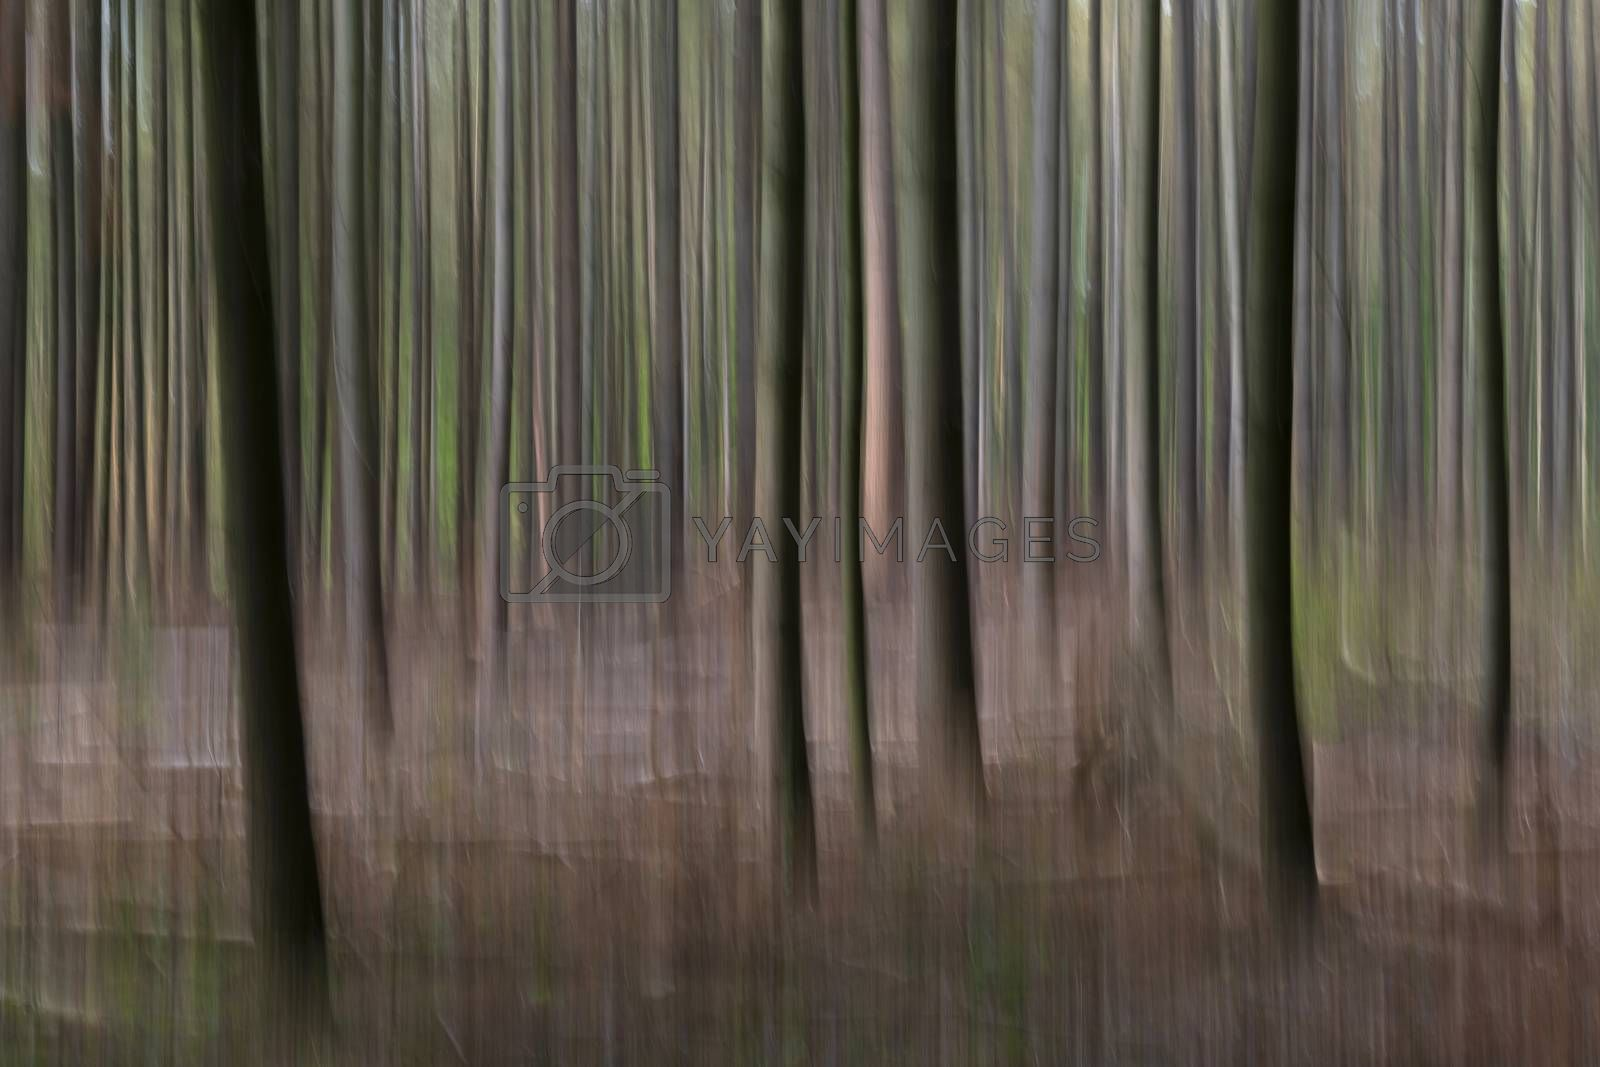 Abstract trees in a forest photographed with subtle movement so picturesque effect